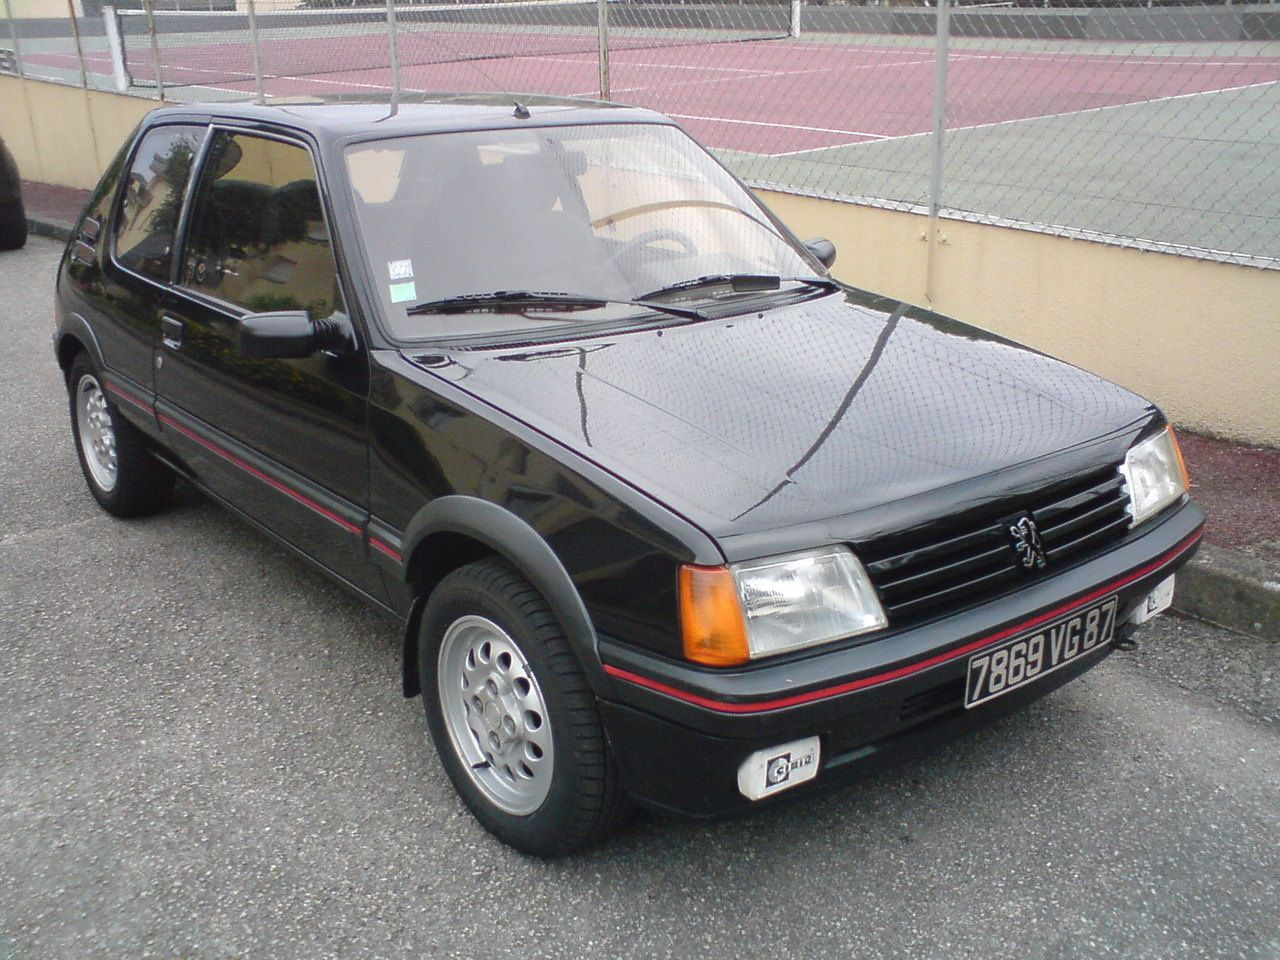 1984 1992 peugeot 205 gti 1 6 dark cars wallpapers. Black Bedroom Furniture Sets. Home Design Ideas